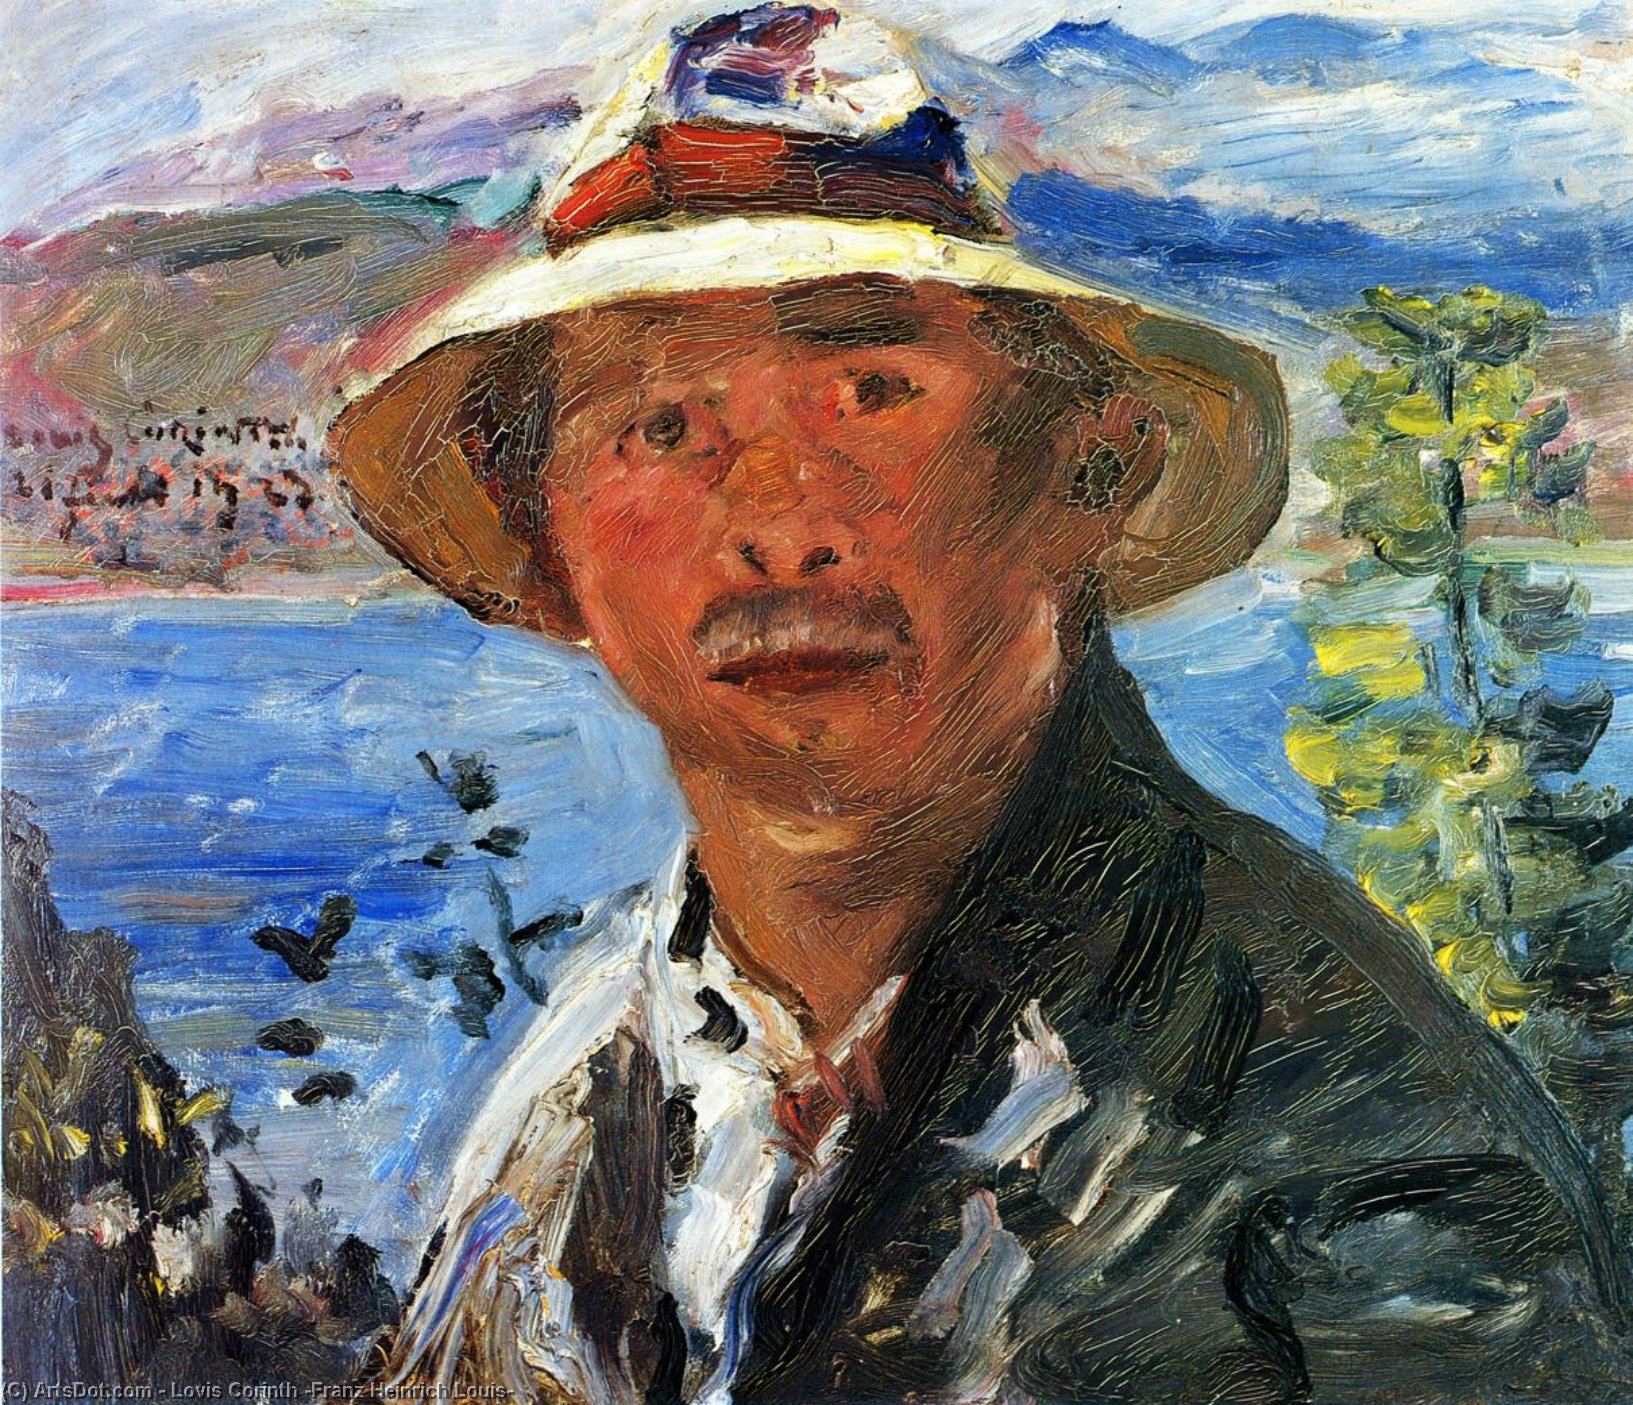 Self Portrait with Straw Hat, Oil On Panel by Lovis Corinth (Franz Heinrich Louis) (1858-1925, Netherlands)